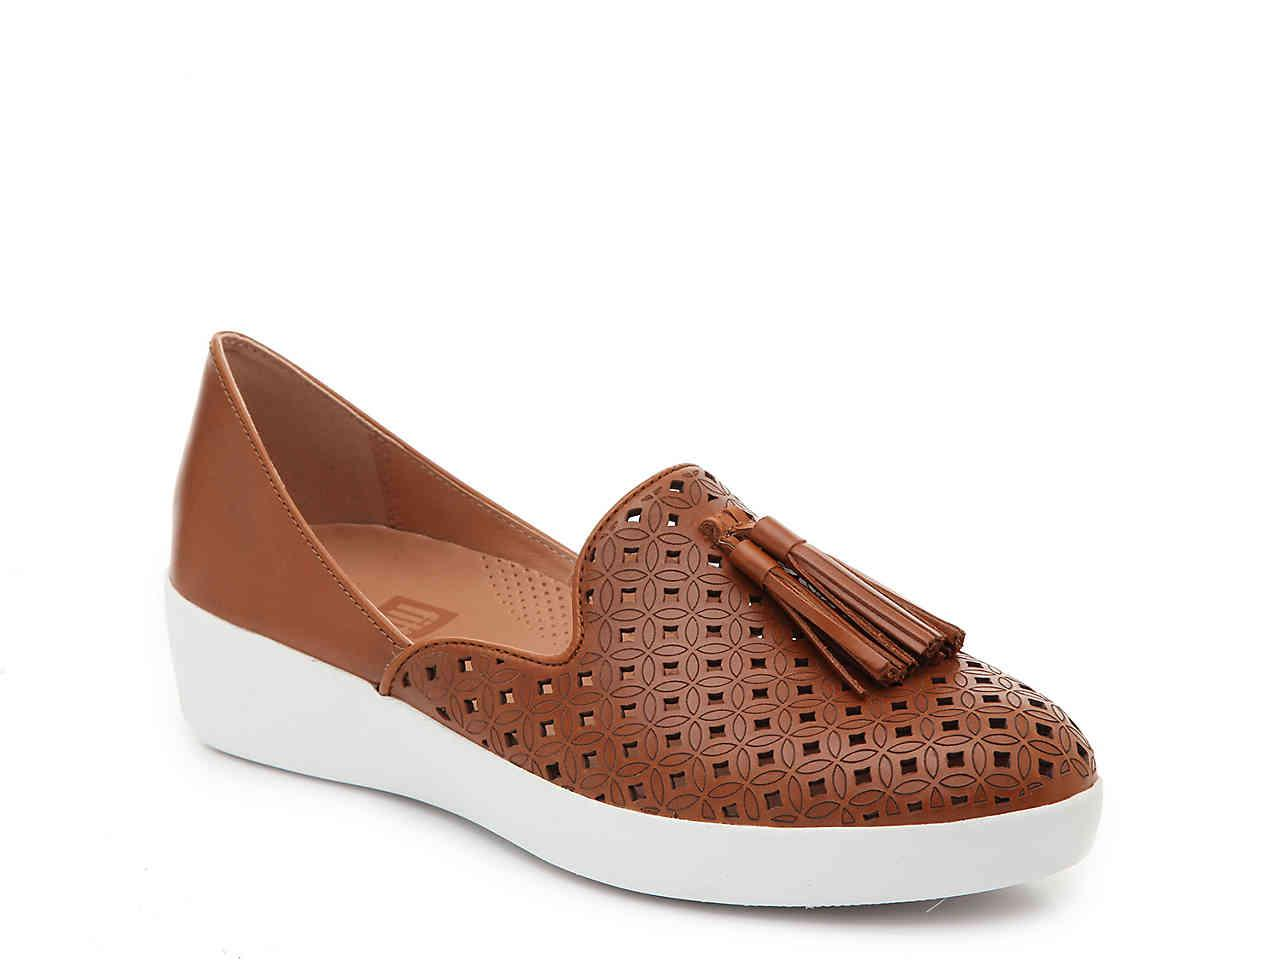 912ab01e45e9 Lyst - Fitflop Tassel Superskate Wedge Loafer in Brown